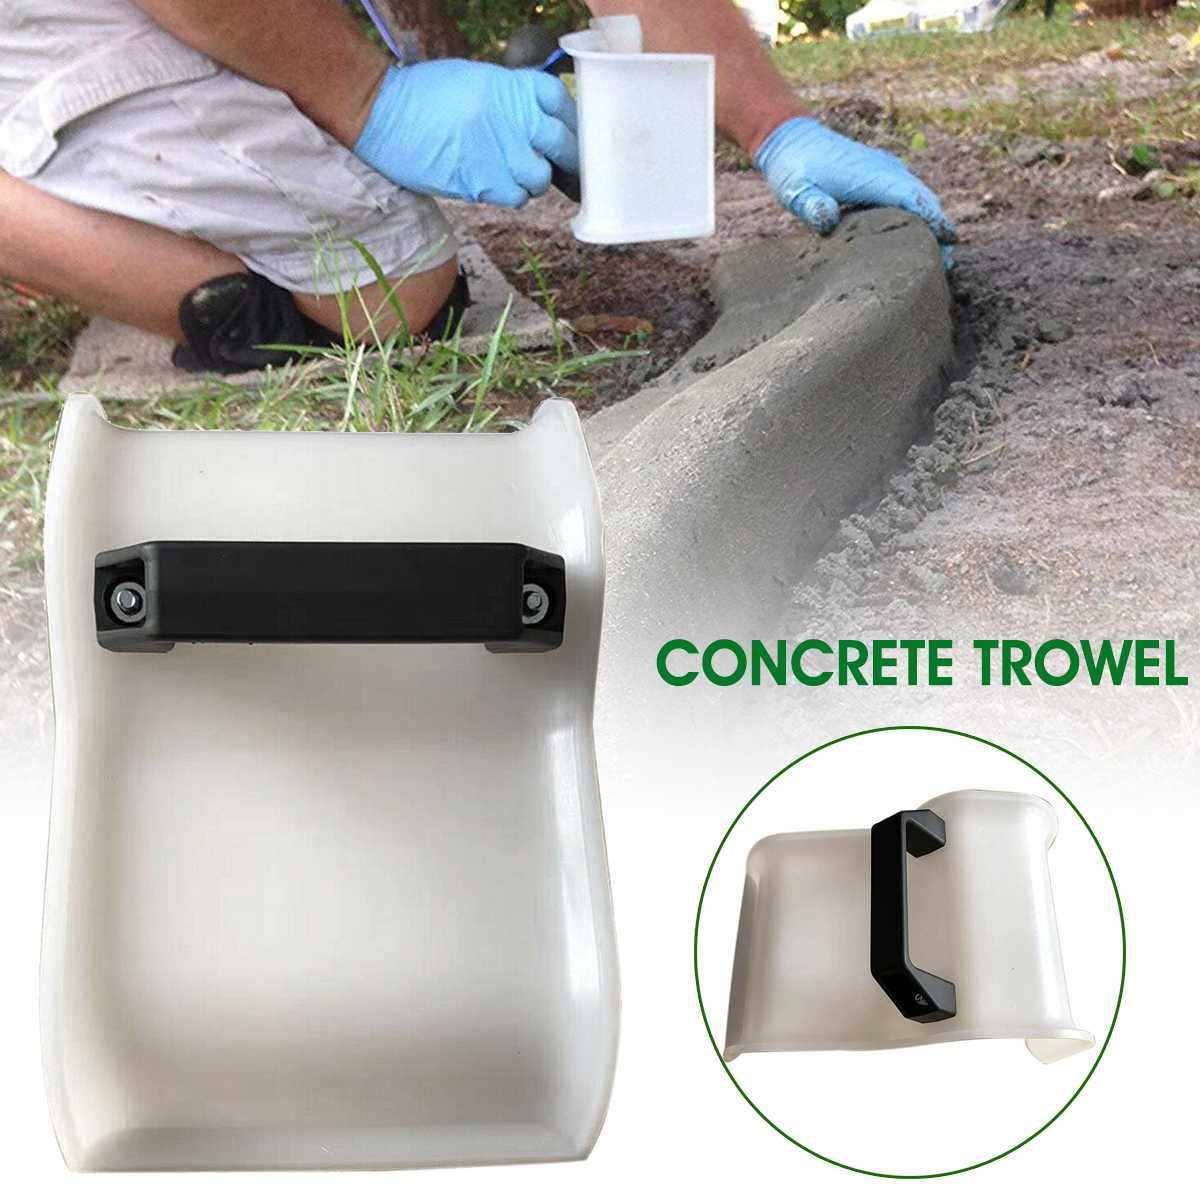 Garden DIY Cement Modeling Tool Trowel Plastic Soil Plaster Garden Concrete DIY Shape Fixing Clip Masonry Tools for Landscape Edging and Curbs